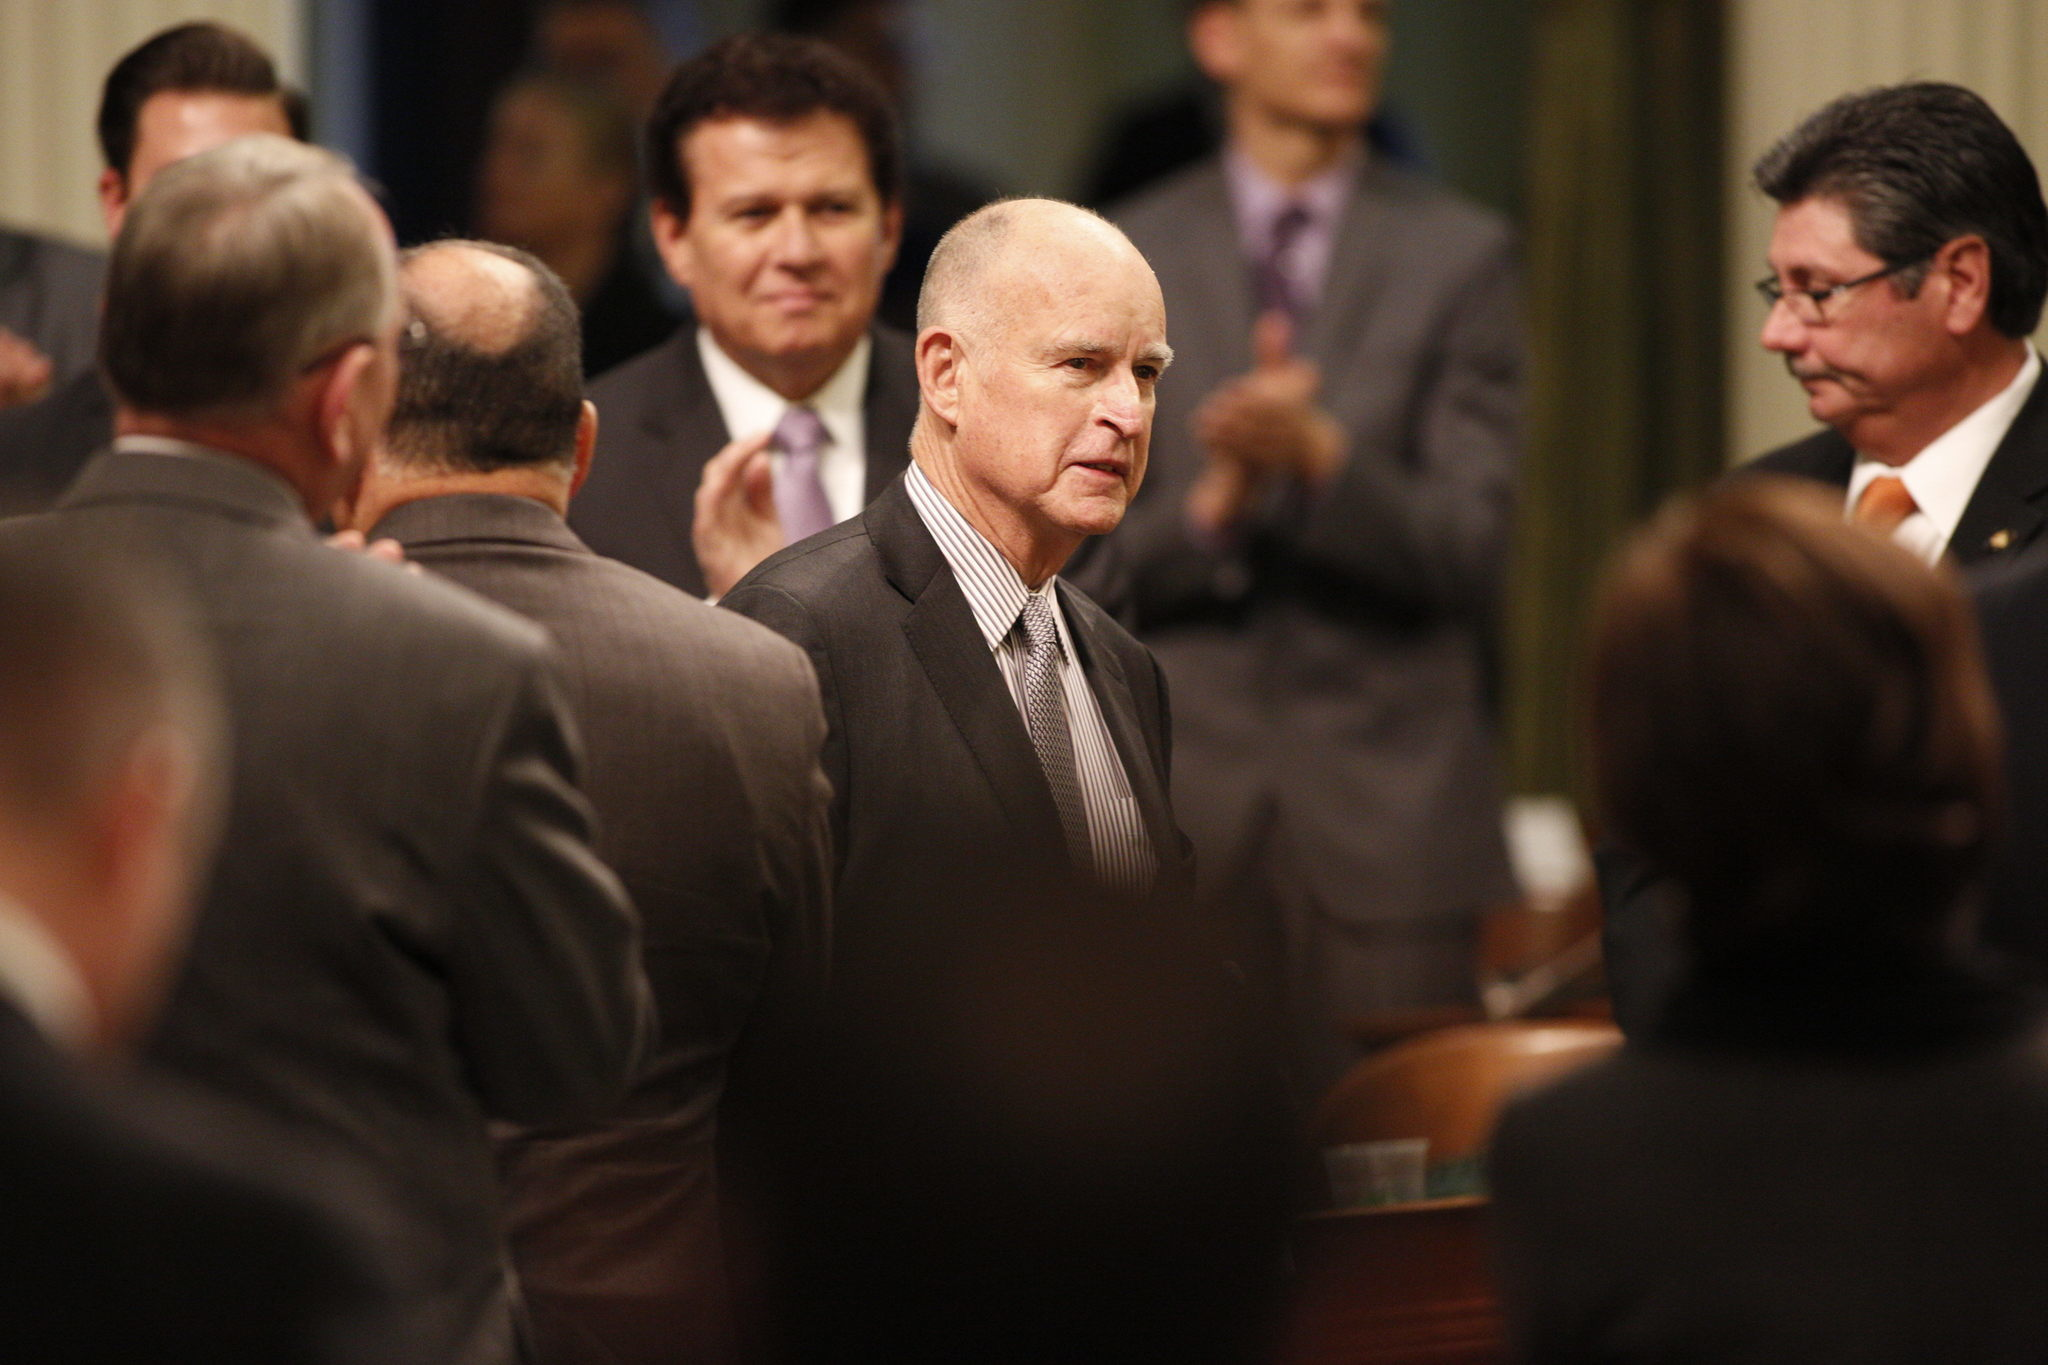 California revised budget up slightly, reinstates some cuts